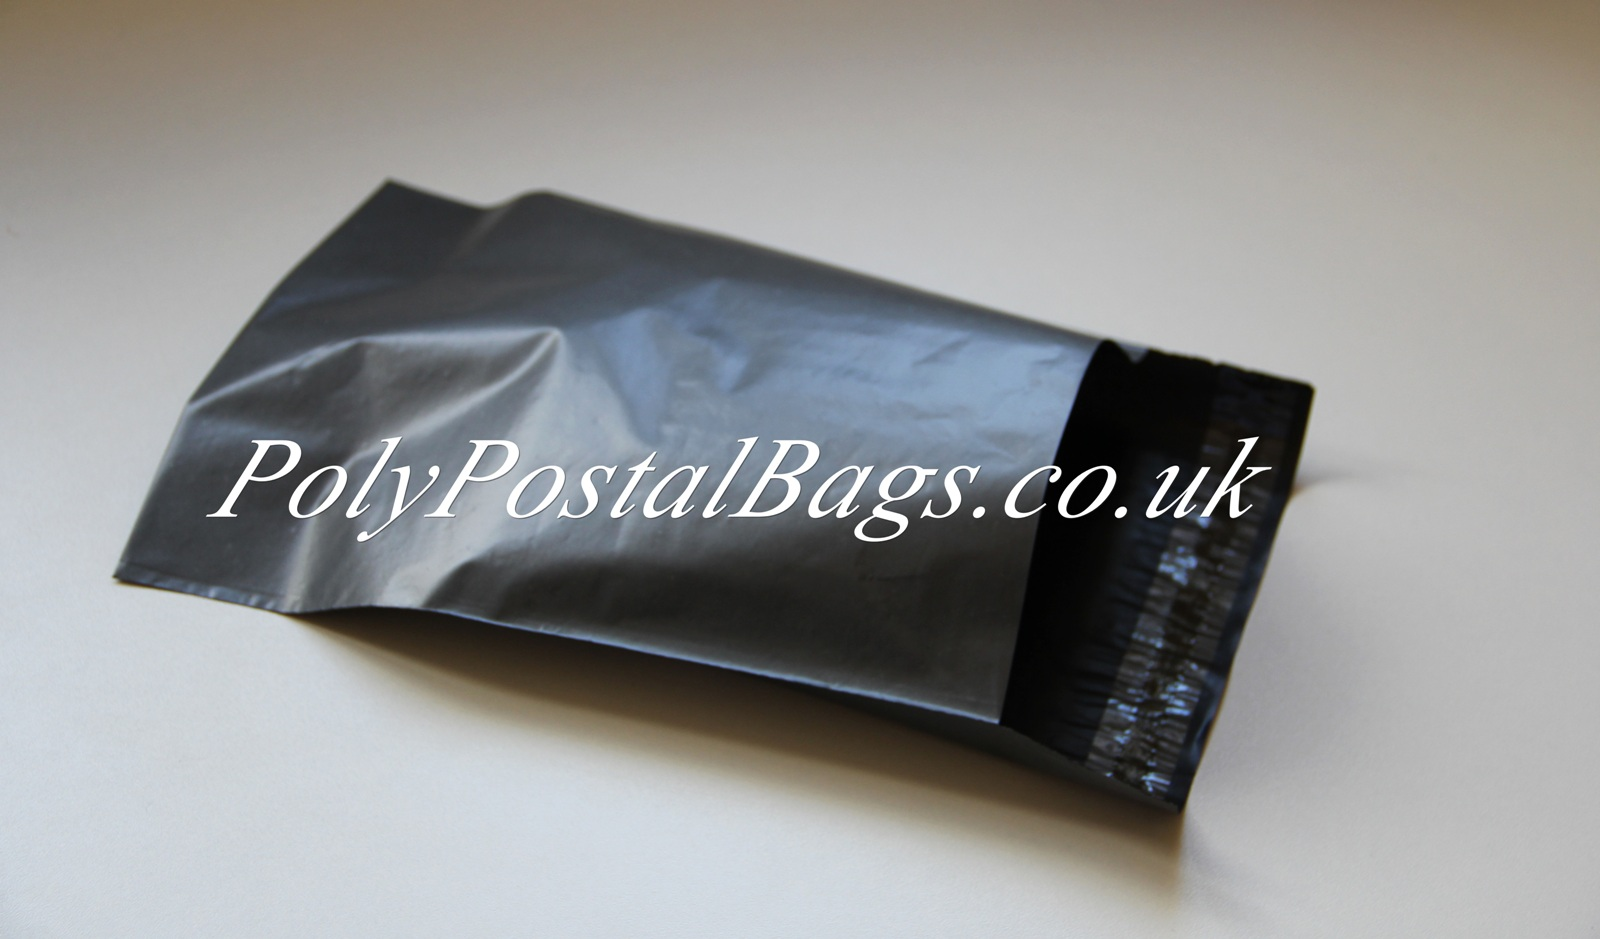 "1pallet (100,000) Grey Mailing Bags 9x12"" - 230x310mm +Lip"